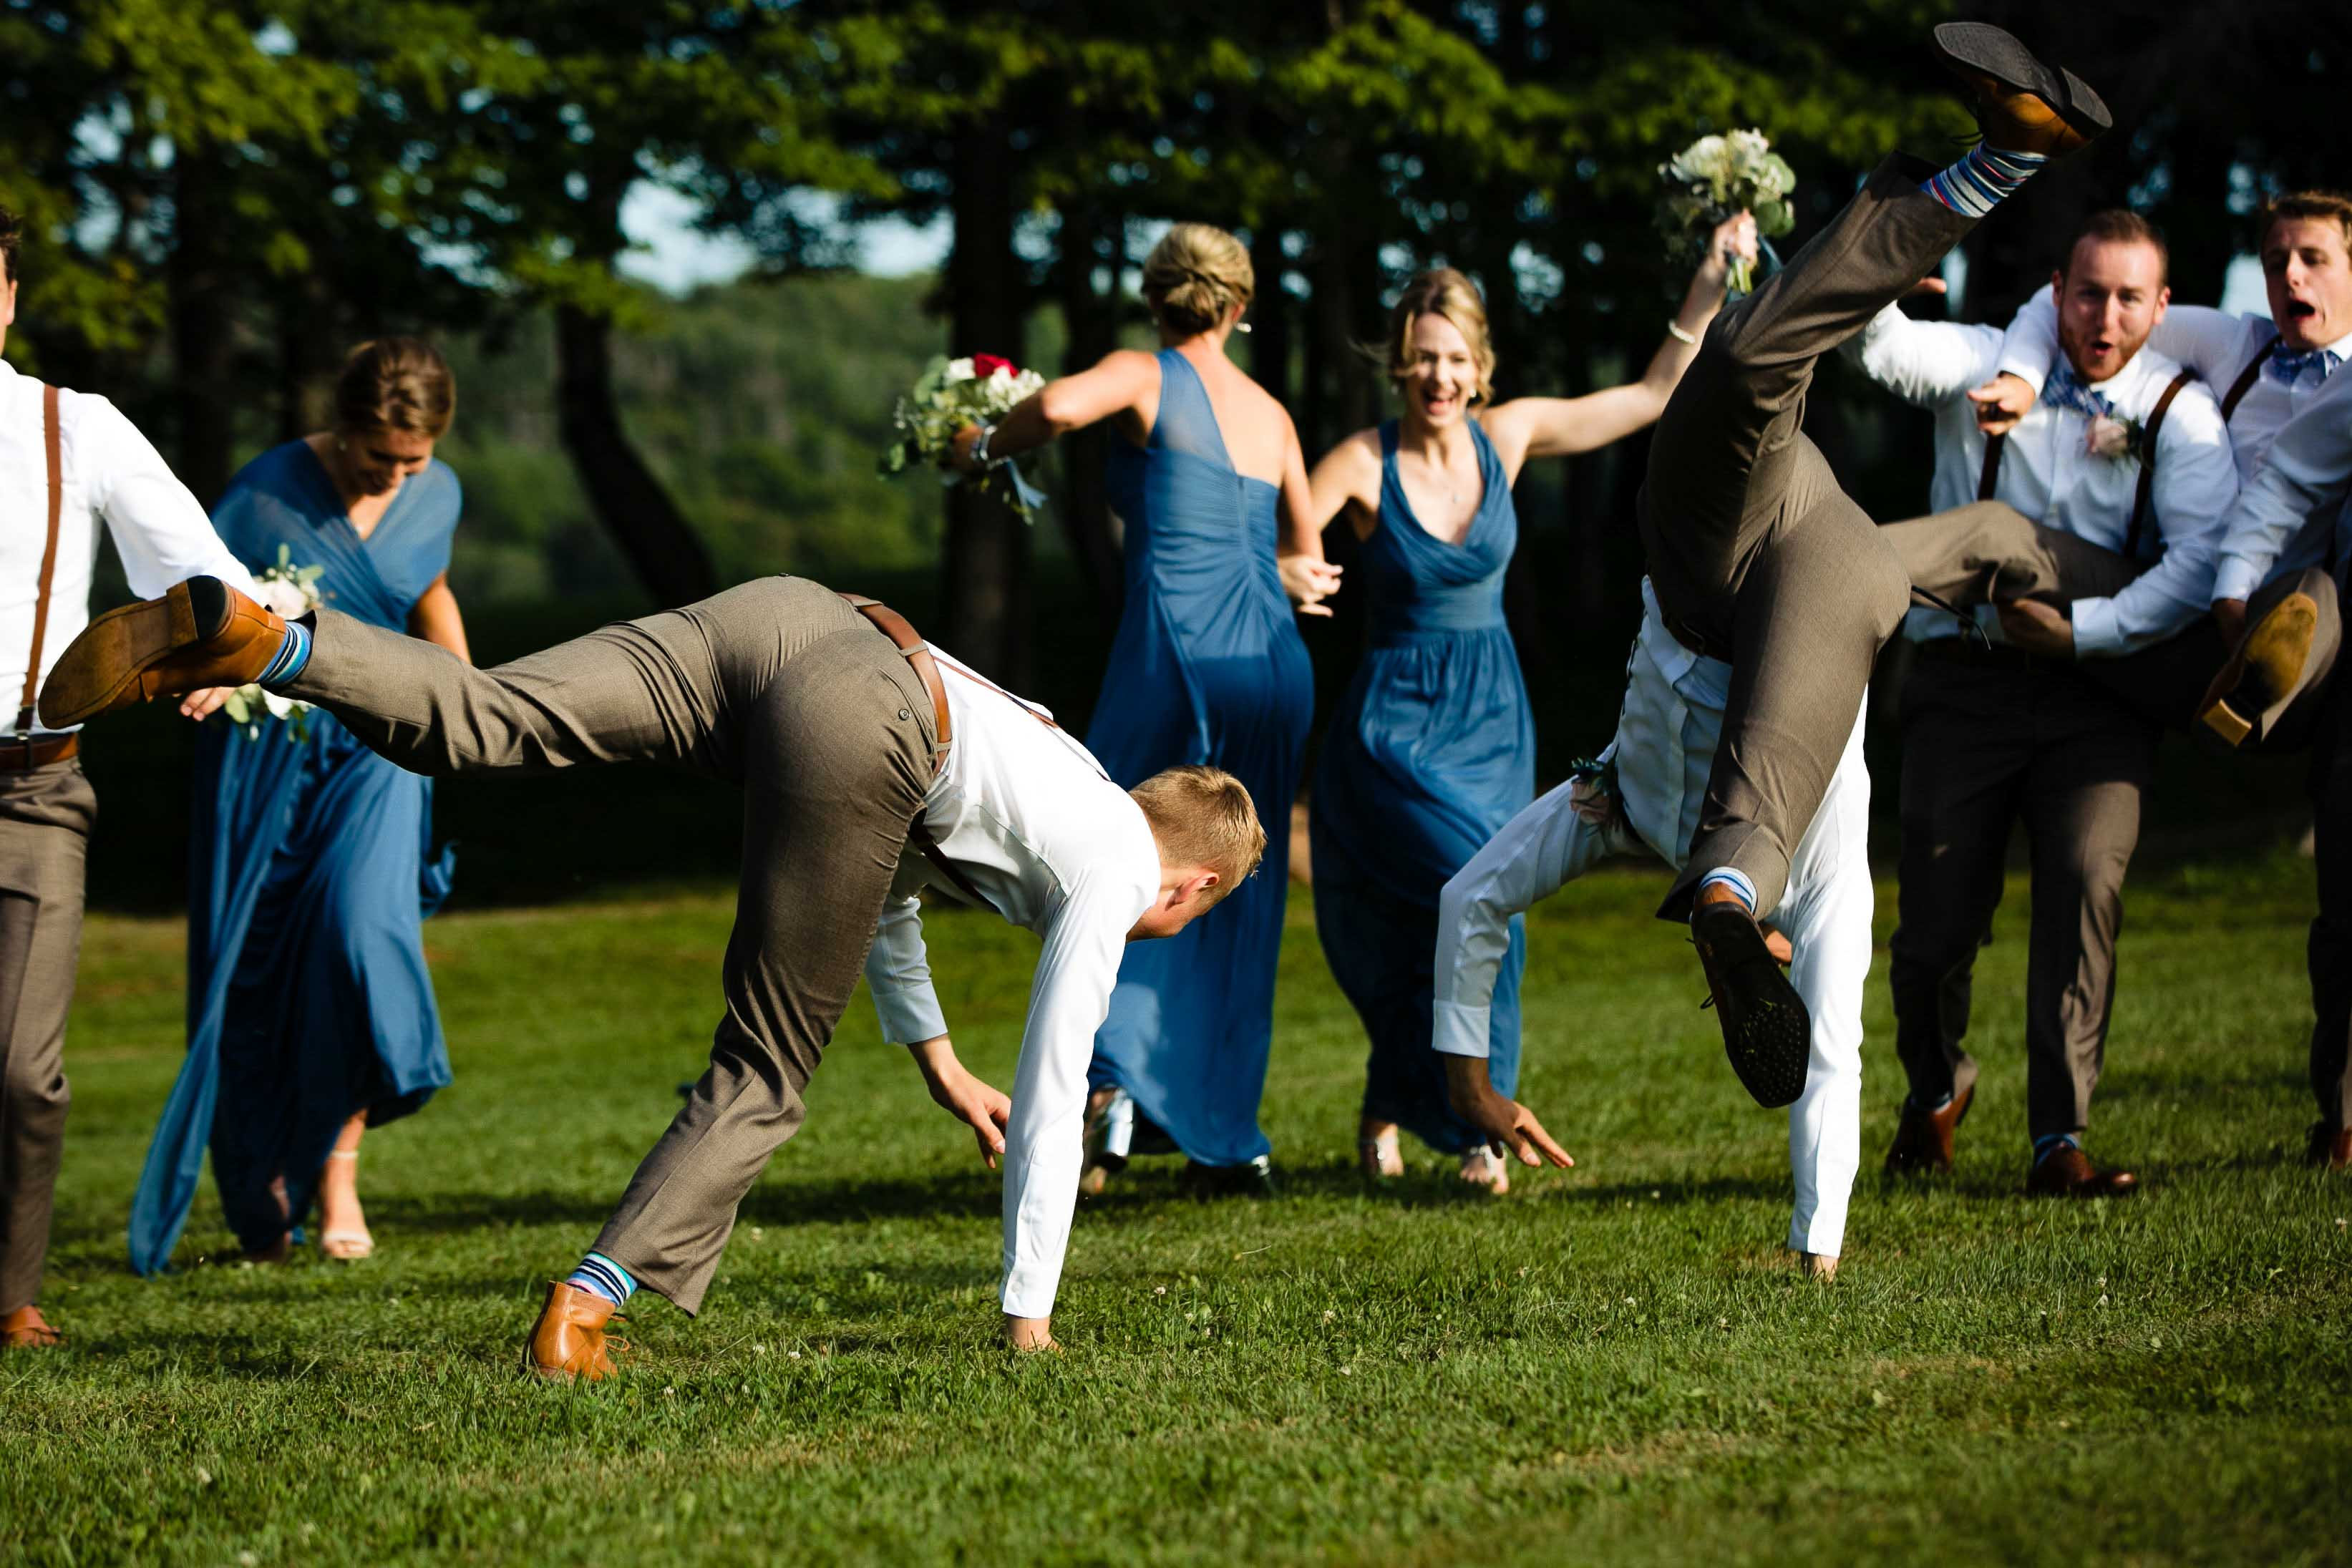 funny wedding party photos at clinton hills wedding